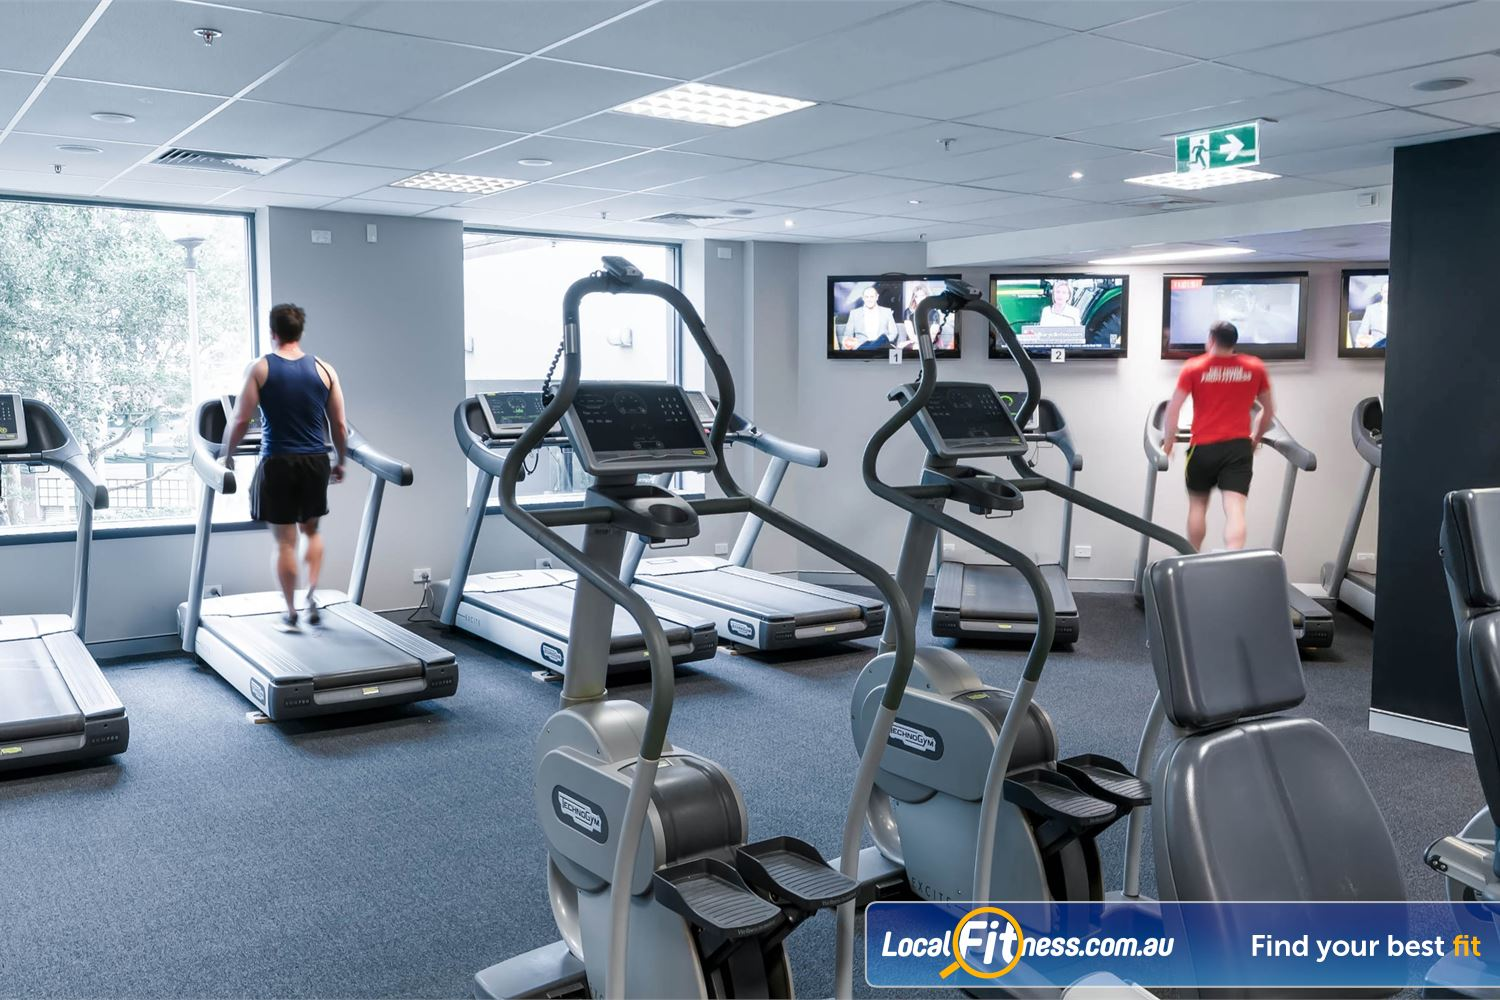 Fitness First Elizabeth Plaza North Sydney The dedicated cardio theatre at Fitness First North Sydney.